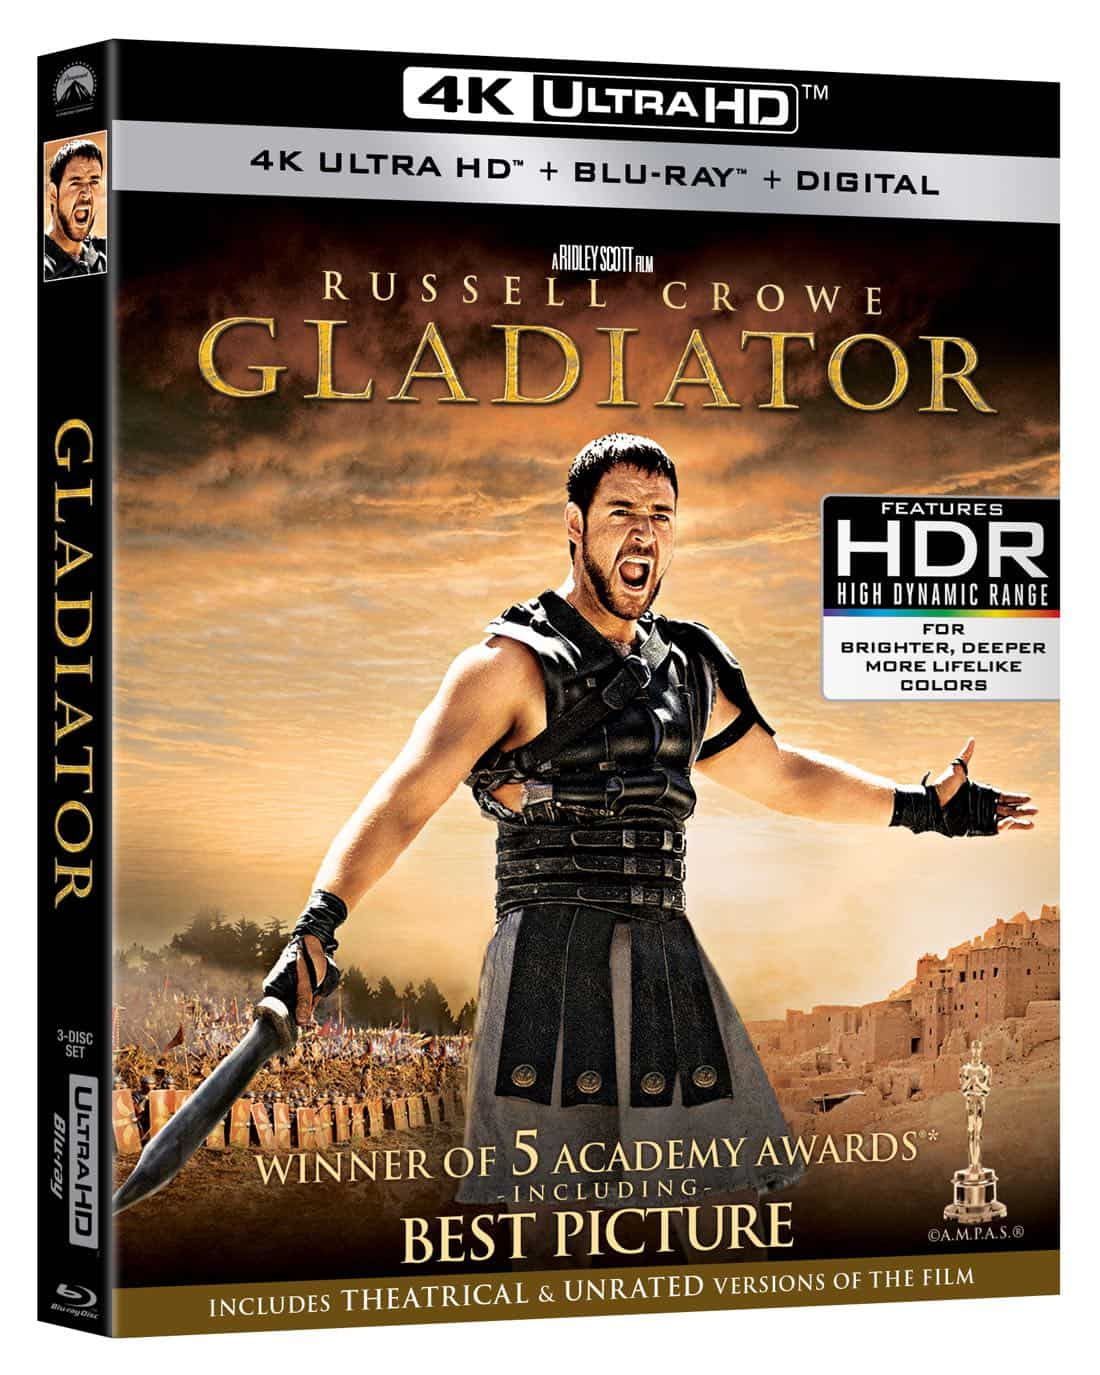 Gladiator-4k-Ultra-HD-Bluray-Digital-Box-Cover-Artwork2